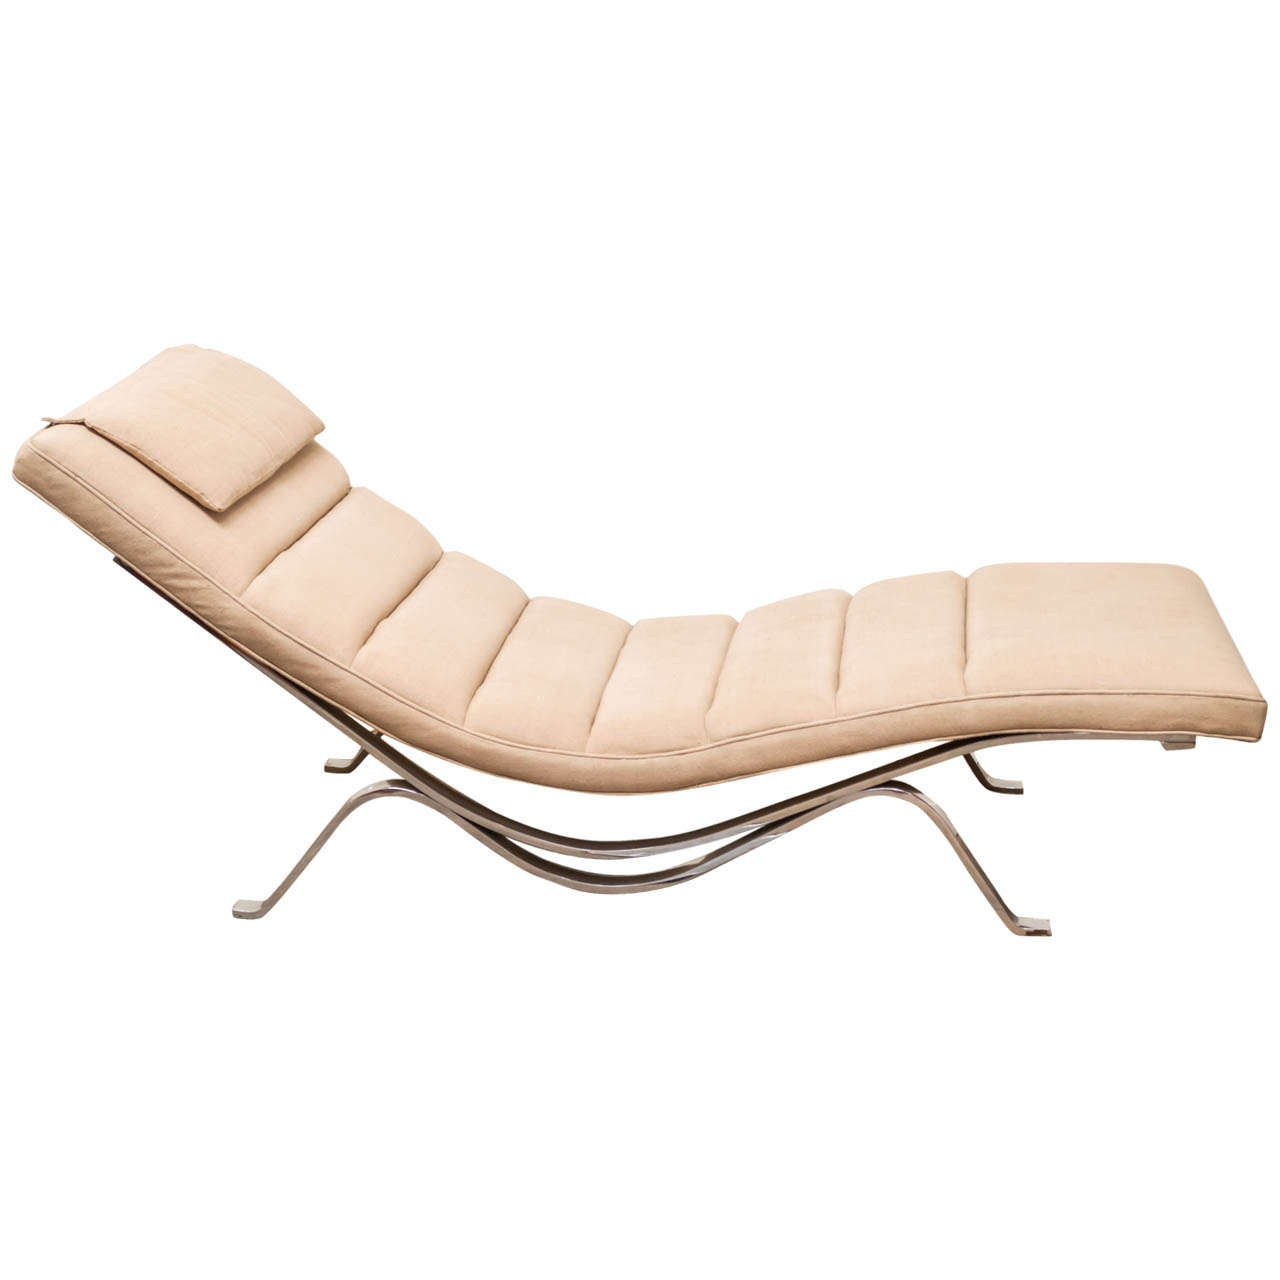 George nelson chaise lounge for sale at 1stdibs for Chaise longue lockheed lounge